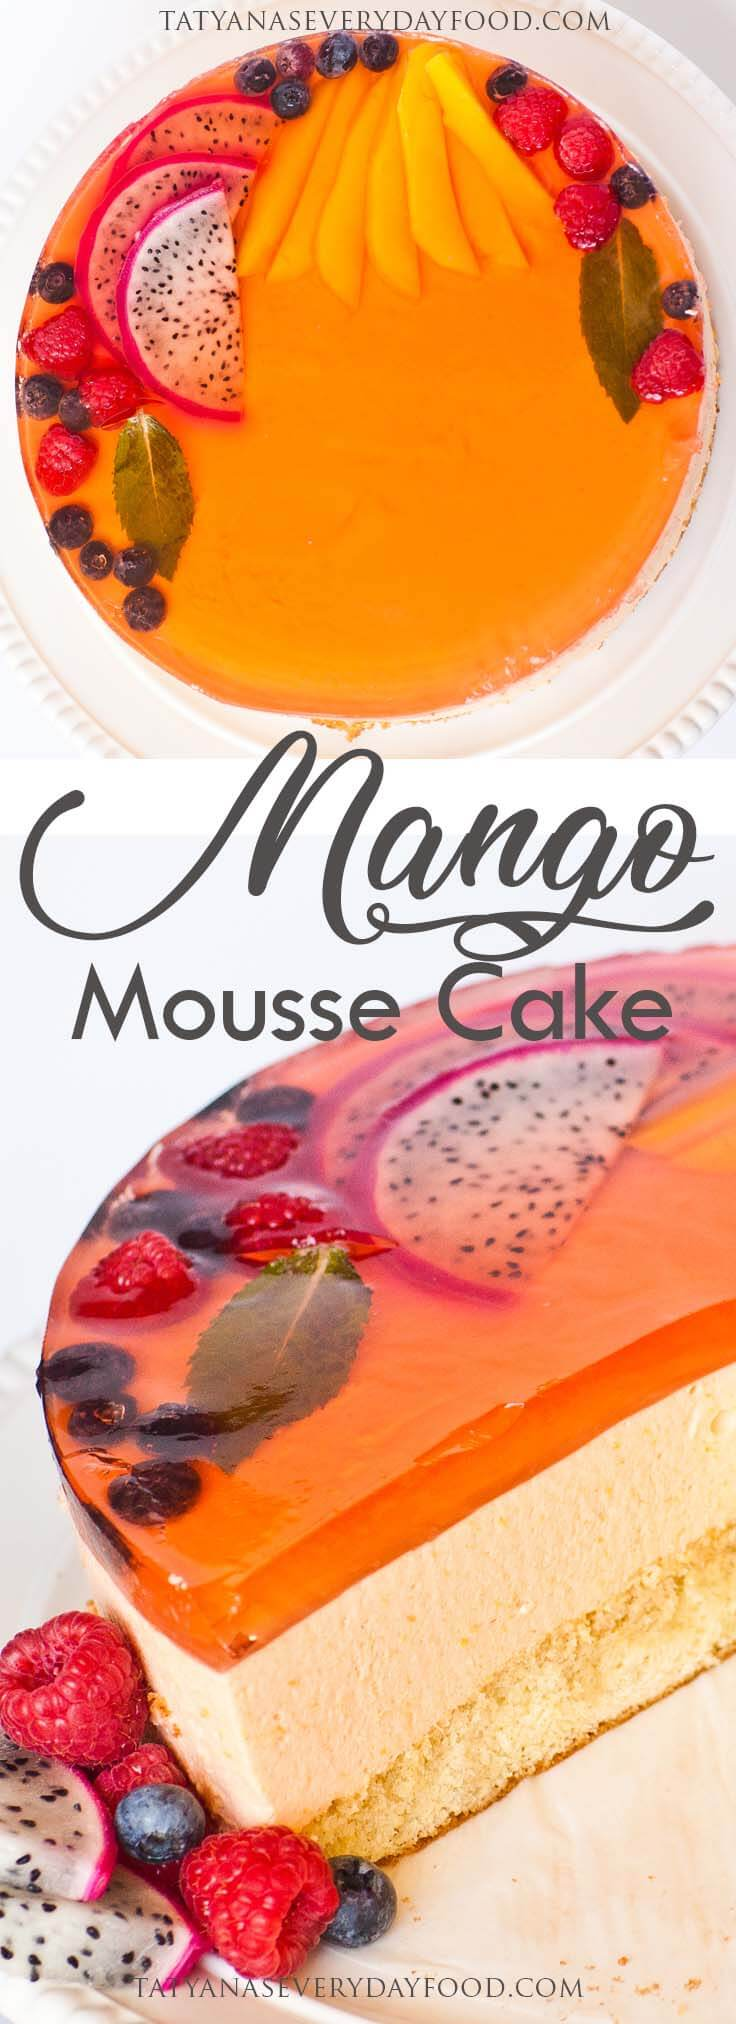 Mango Mousse Cake Recipe with video